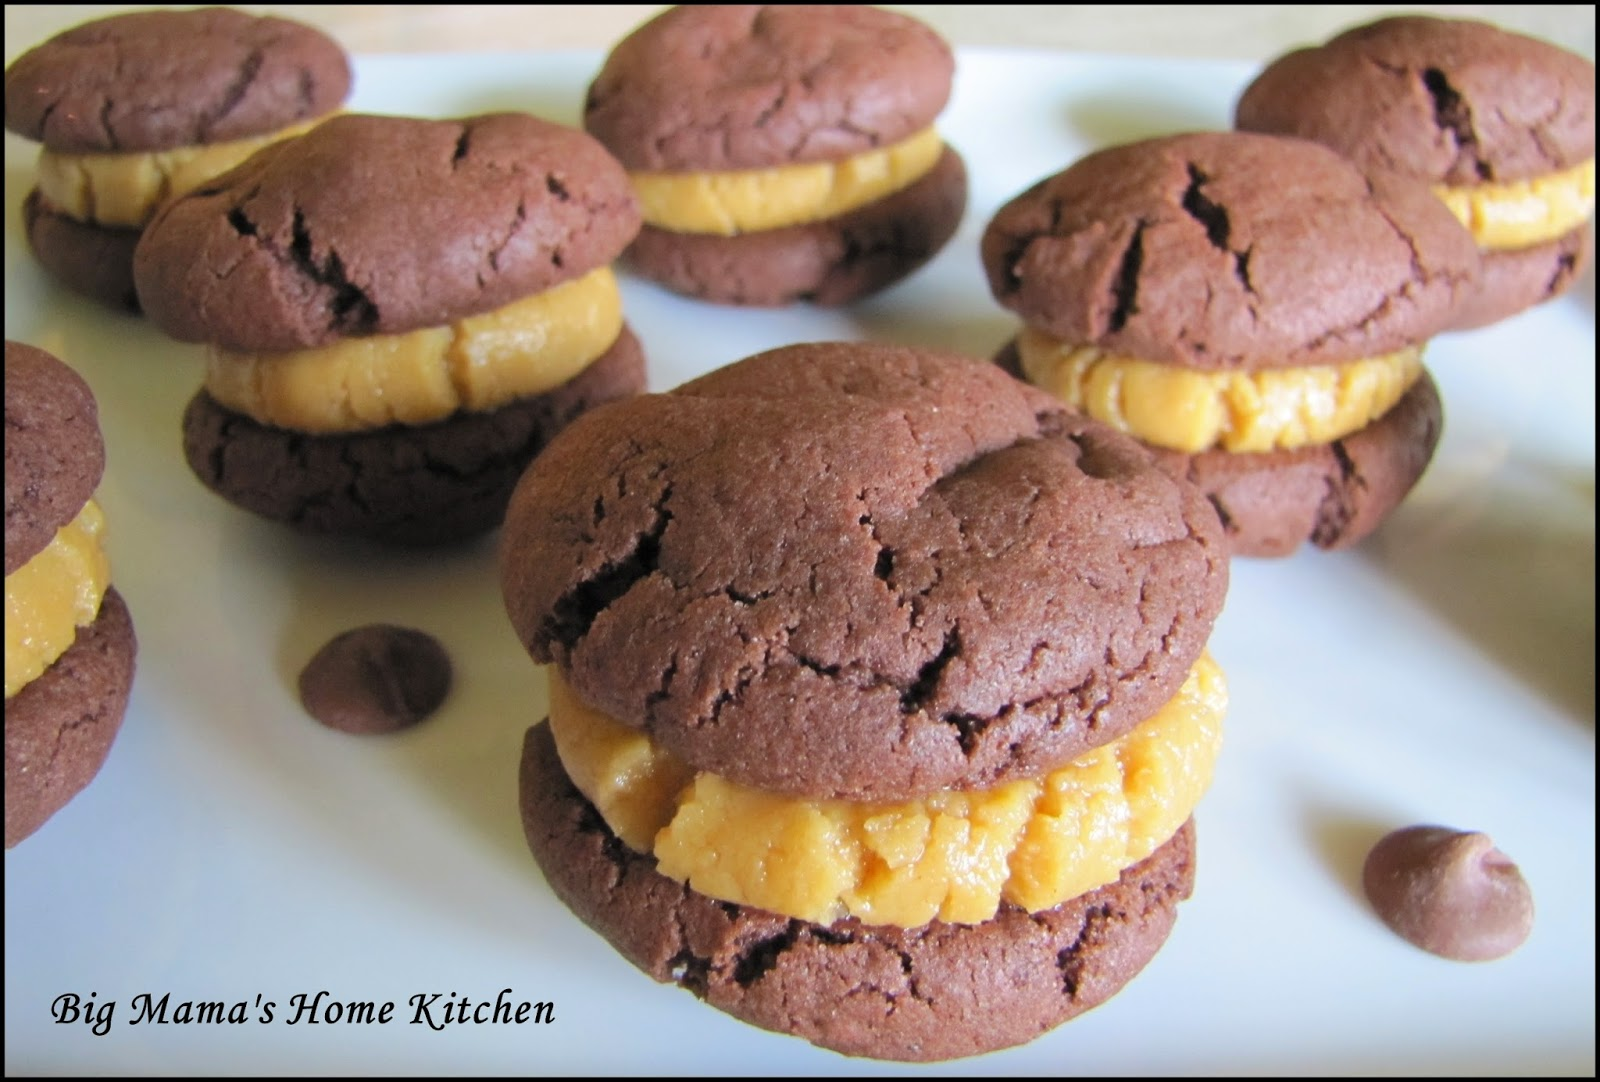 Big Mama's Home Kitchen: Fudge Cookies with Peanut Butter Filling